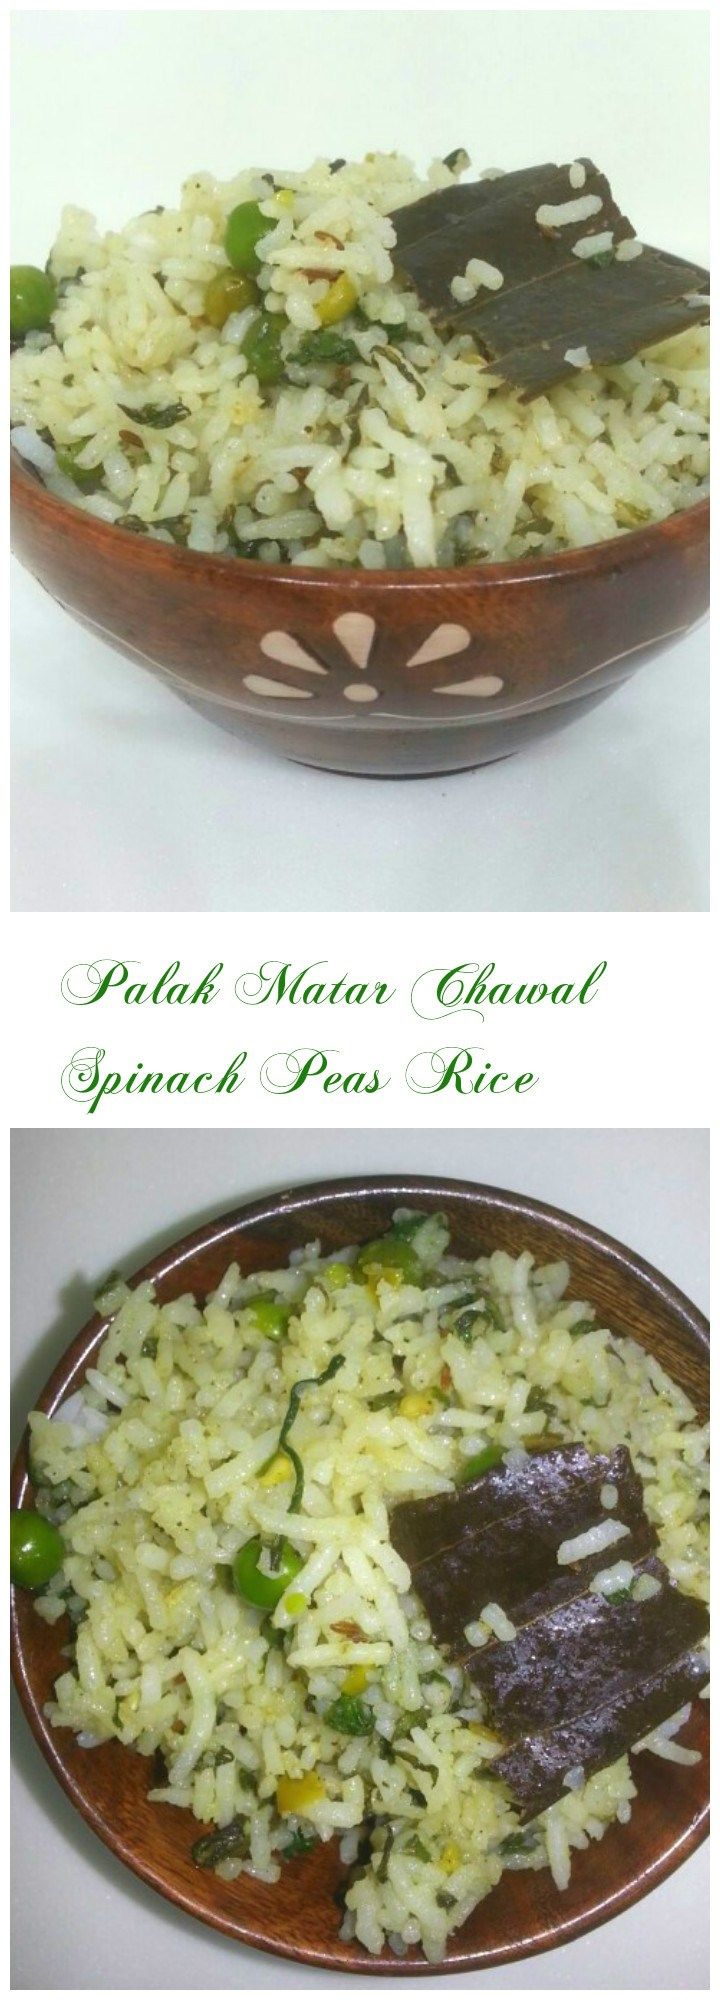 Palak Matar Chawal : A tasty and simple, easy to make pulao with all the goodness of Spinach with tiny green peas coming in between.